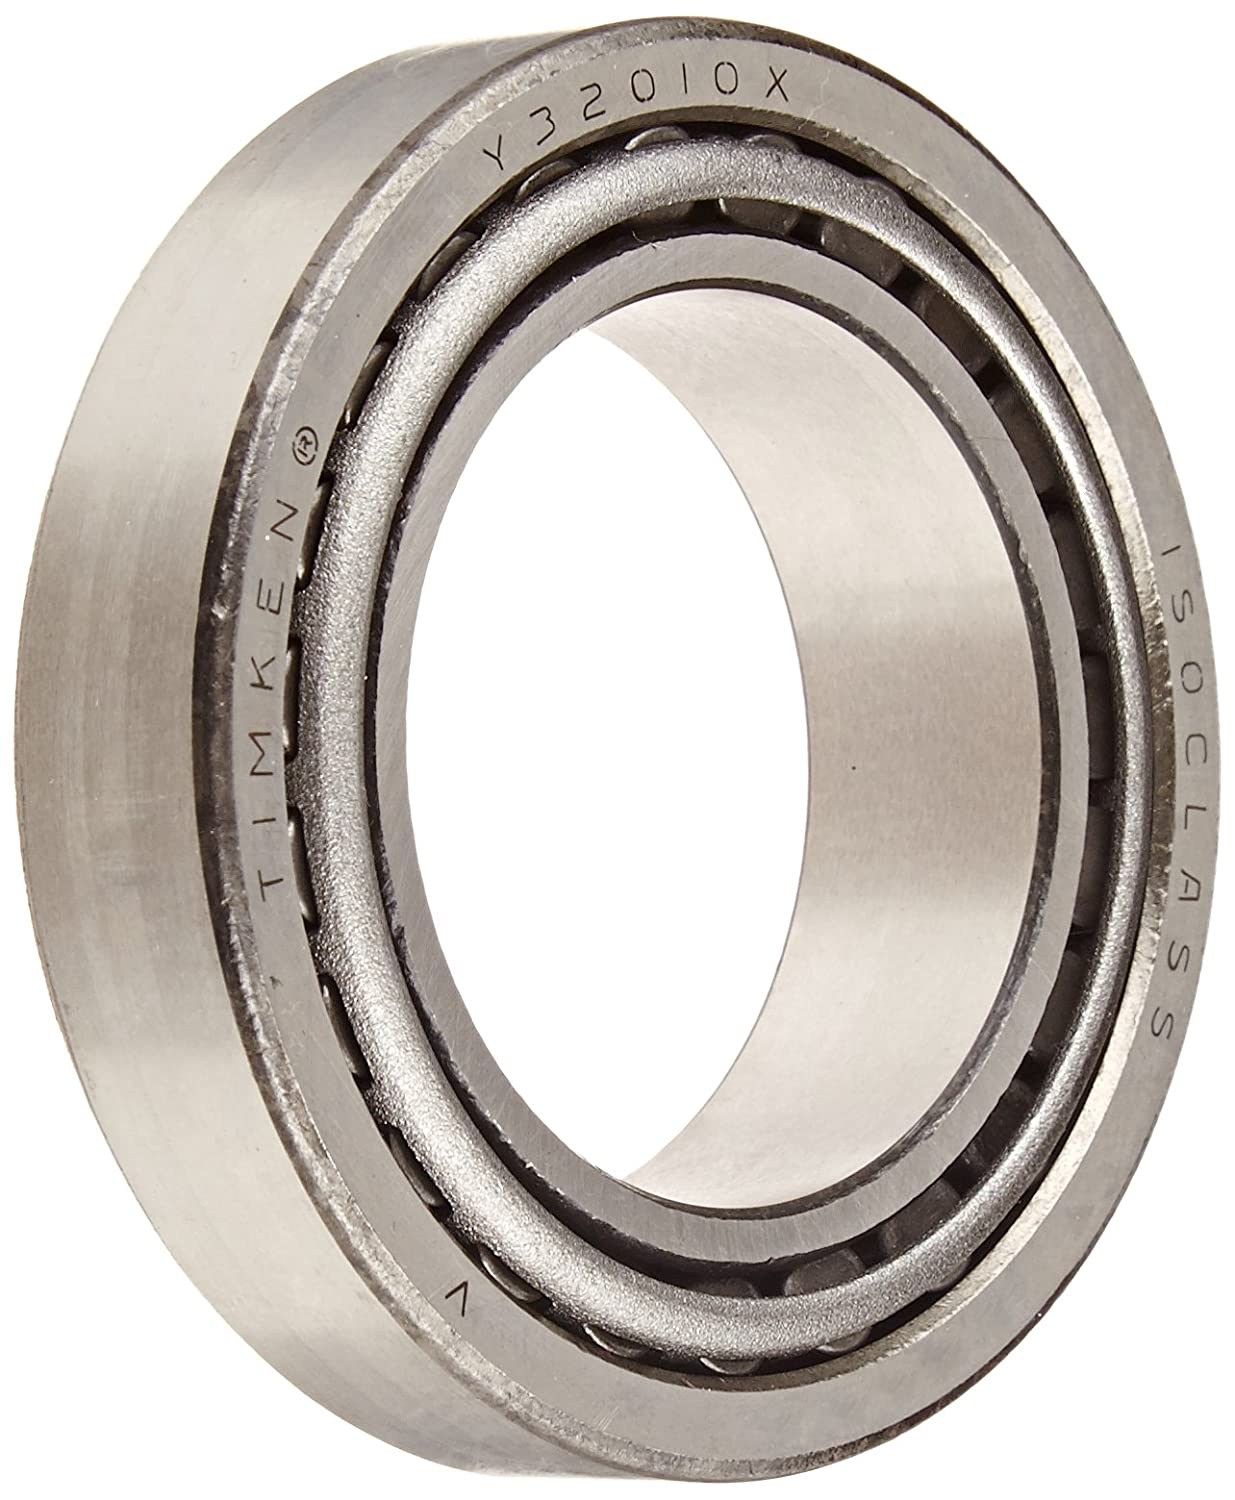 hot sale Timken 32010X90KA1 Tapered Roller Bearing Cone and